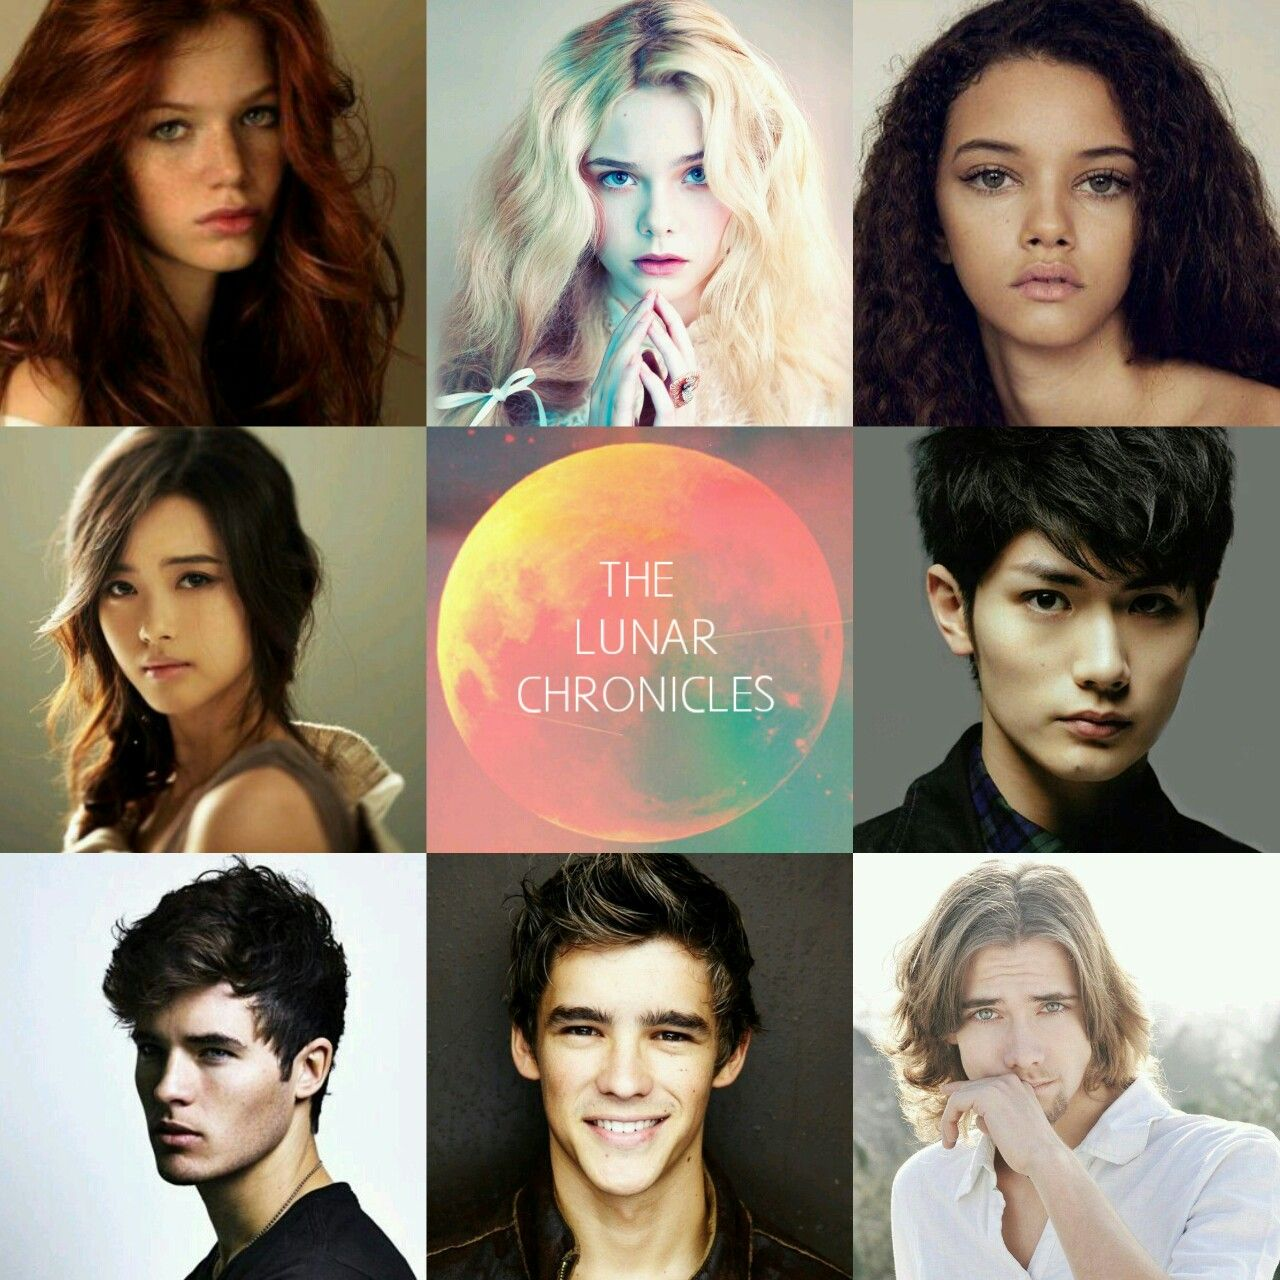 Lunar chronicles fan cast | lunar chronicles ☆ | Pinterest ...